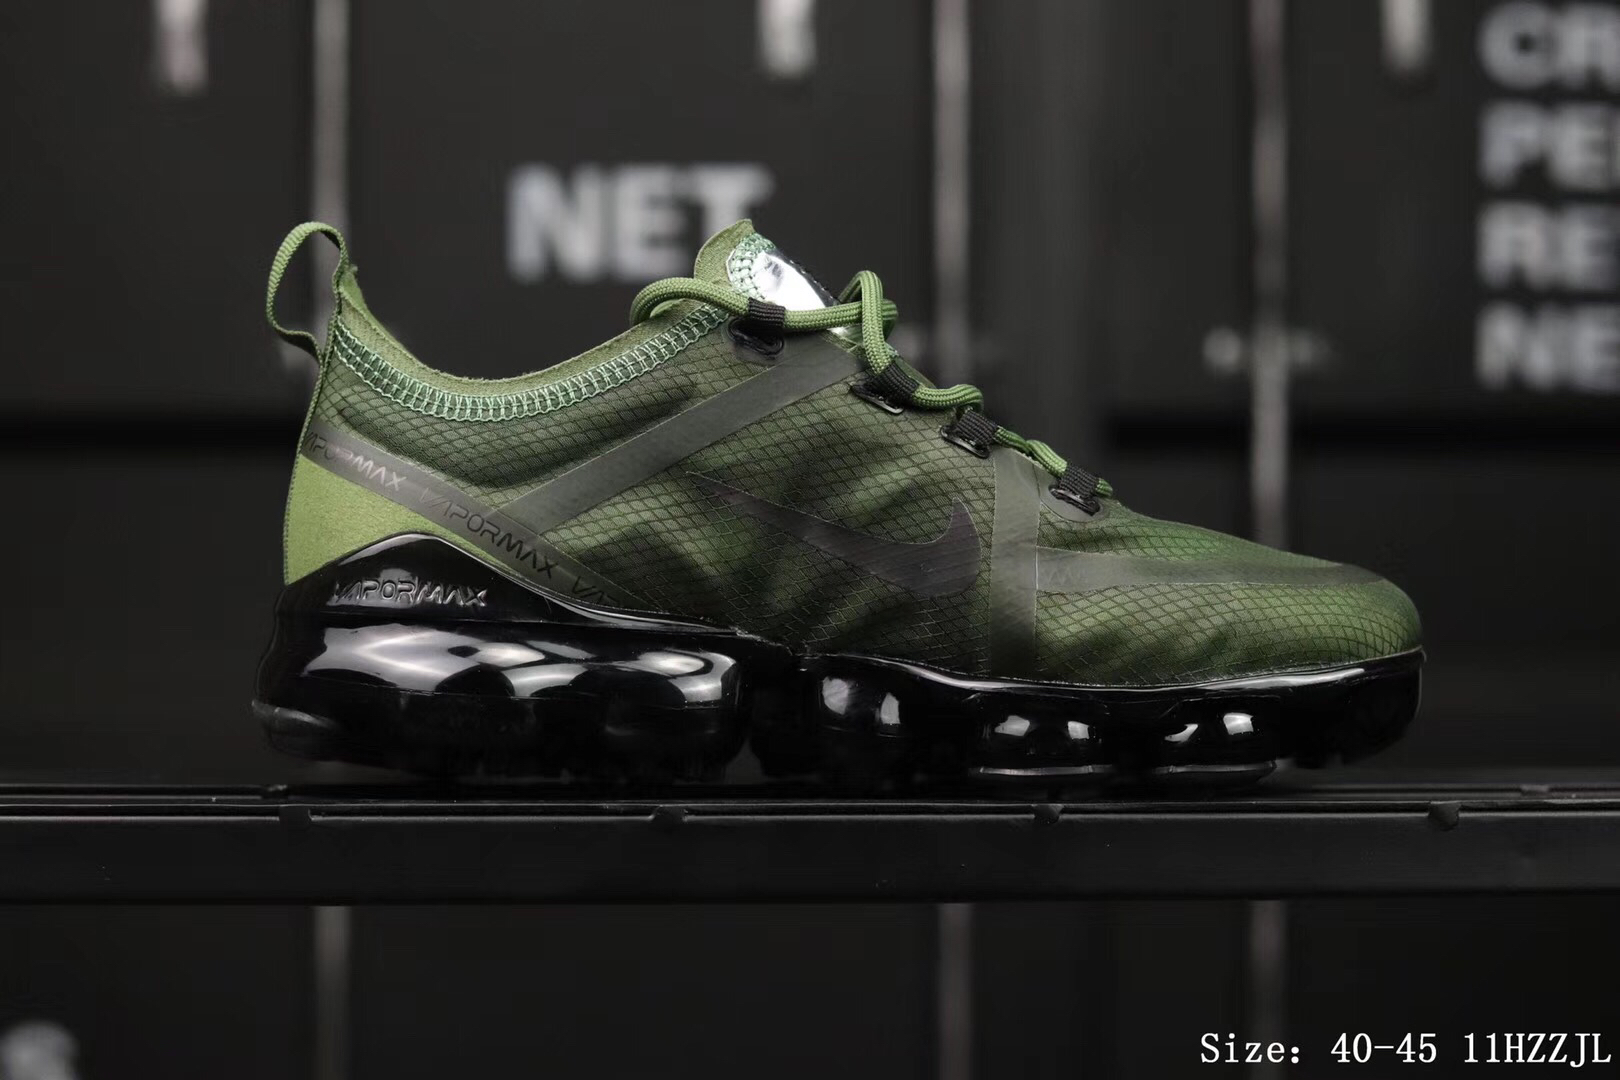 Nike Air Vapormax 2019 Mesh Green Black Shoes For Women